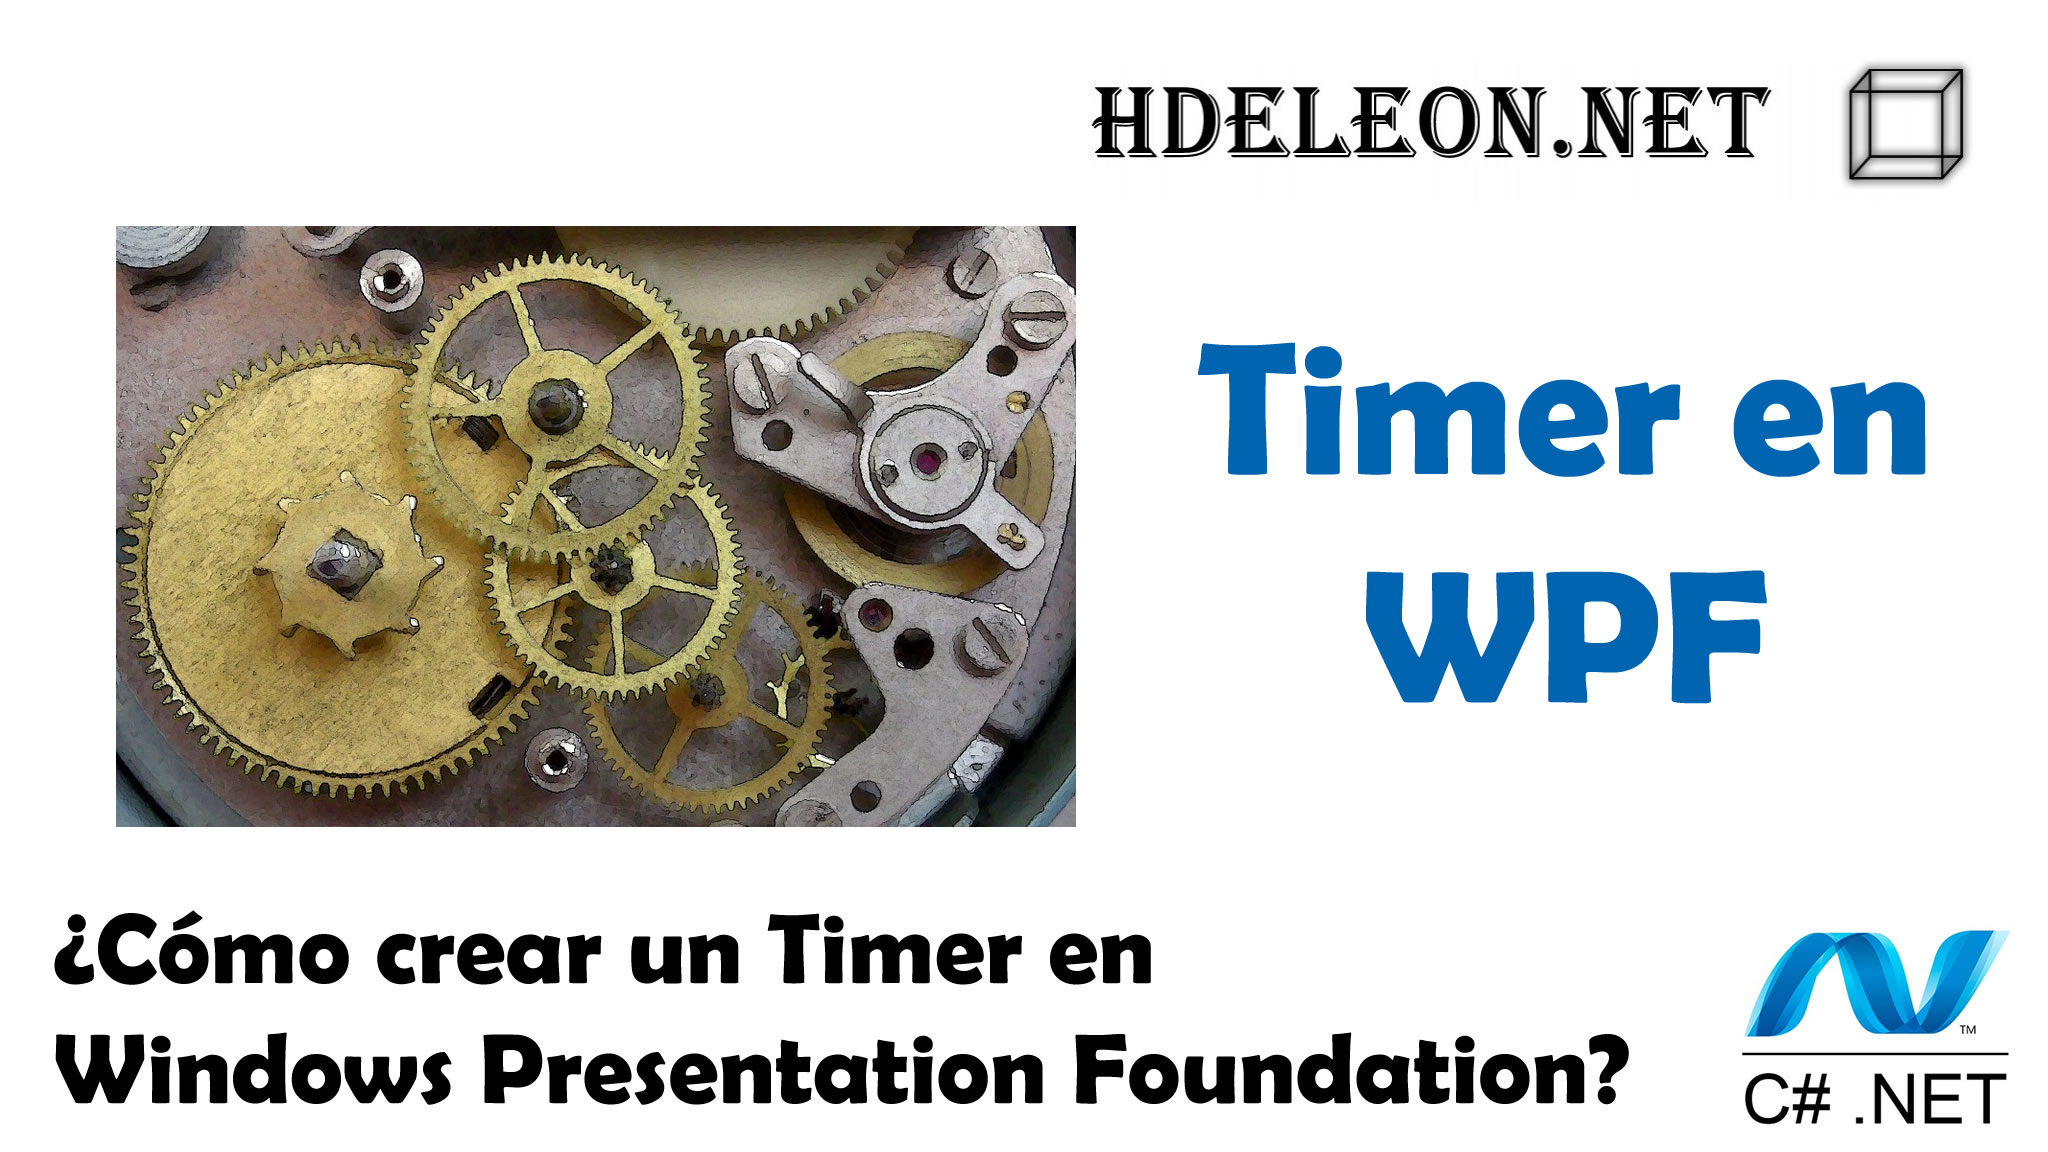 ¿Cómo crear un Timer en Windows Presentation Foundation?, WPF C# .Net